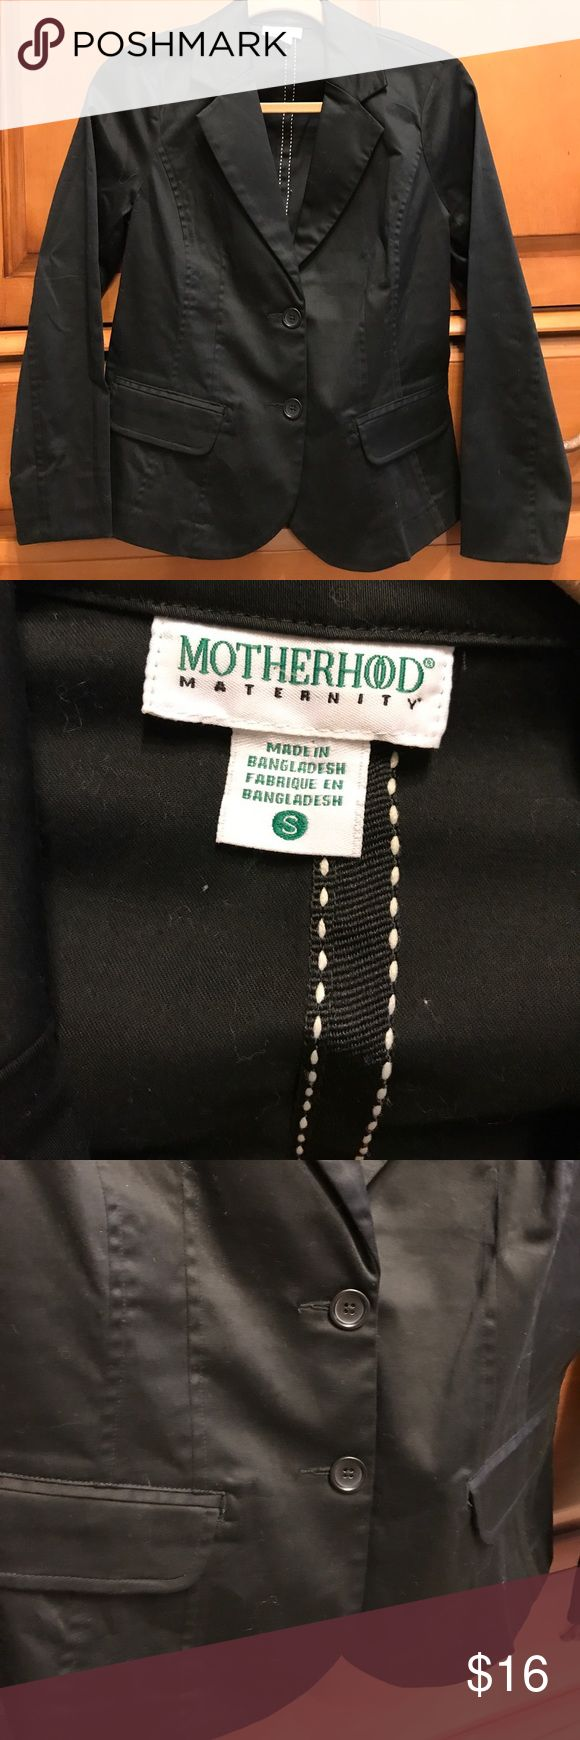 Motherhood maternity black blazer jacket small The blazer is like new it has two buttons in the front from a smoke and pet free home Motherhood Maternity Jackets & Coats Blazers